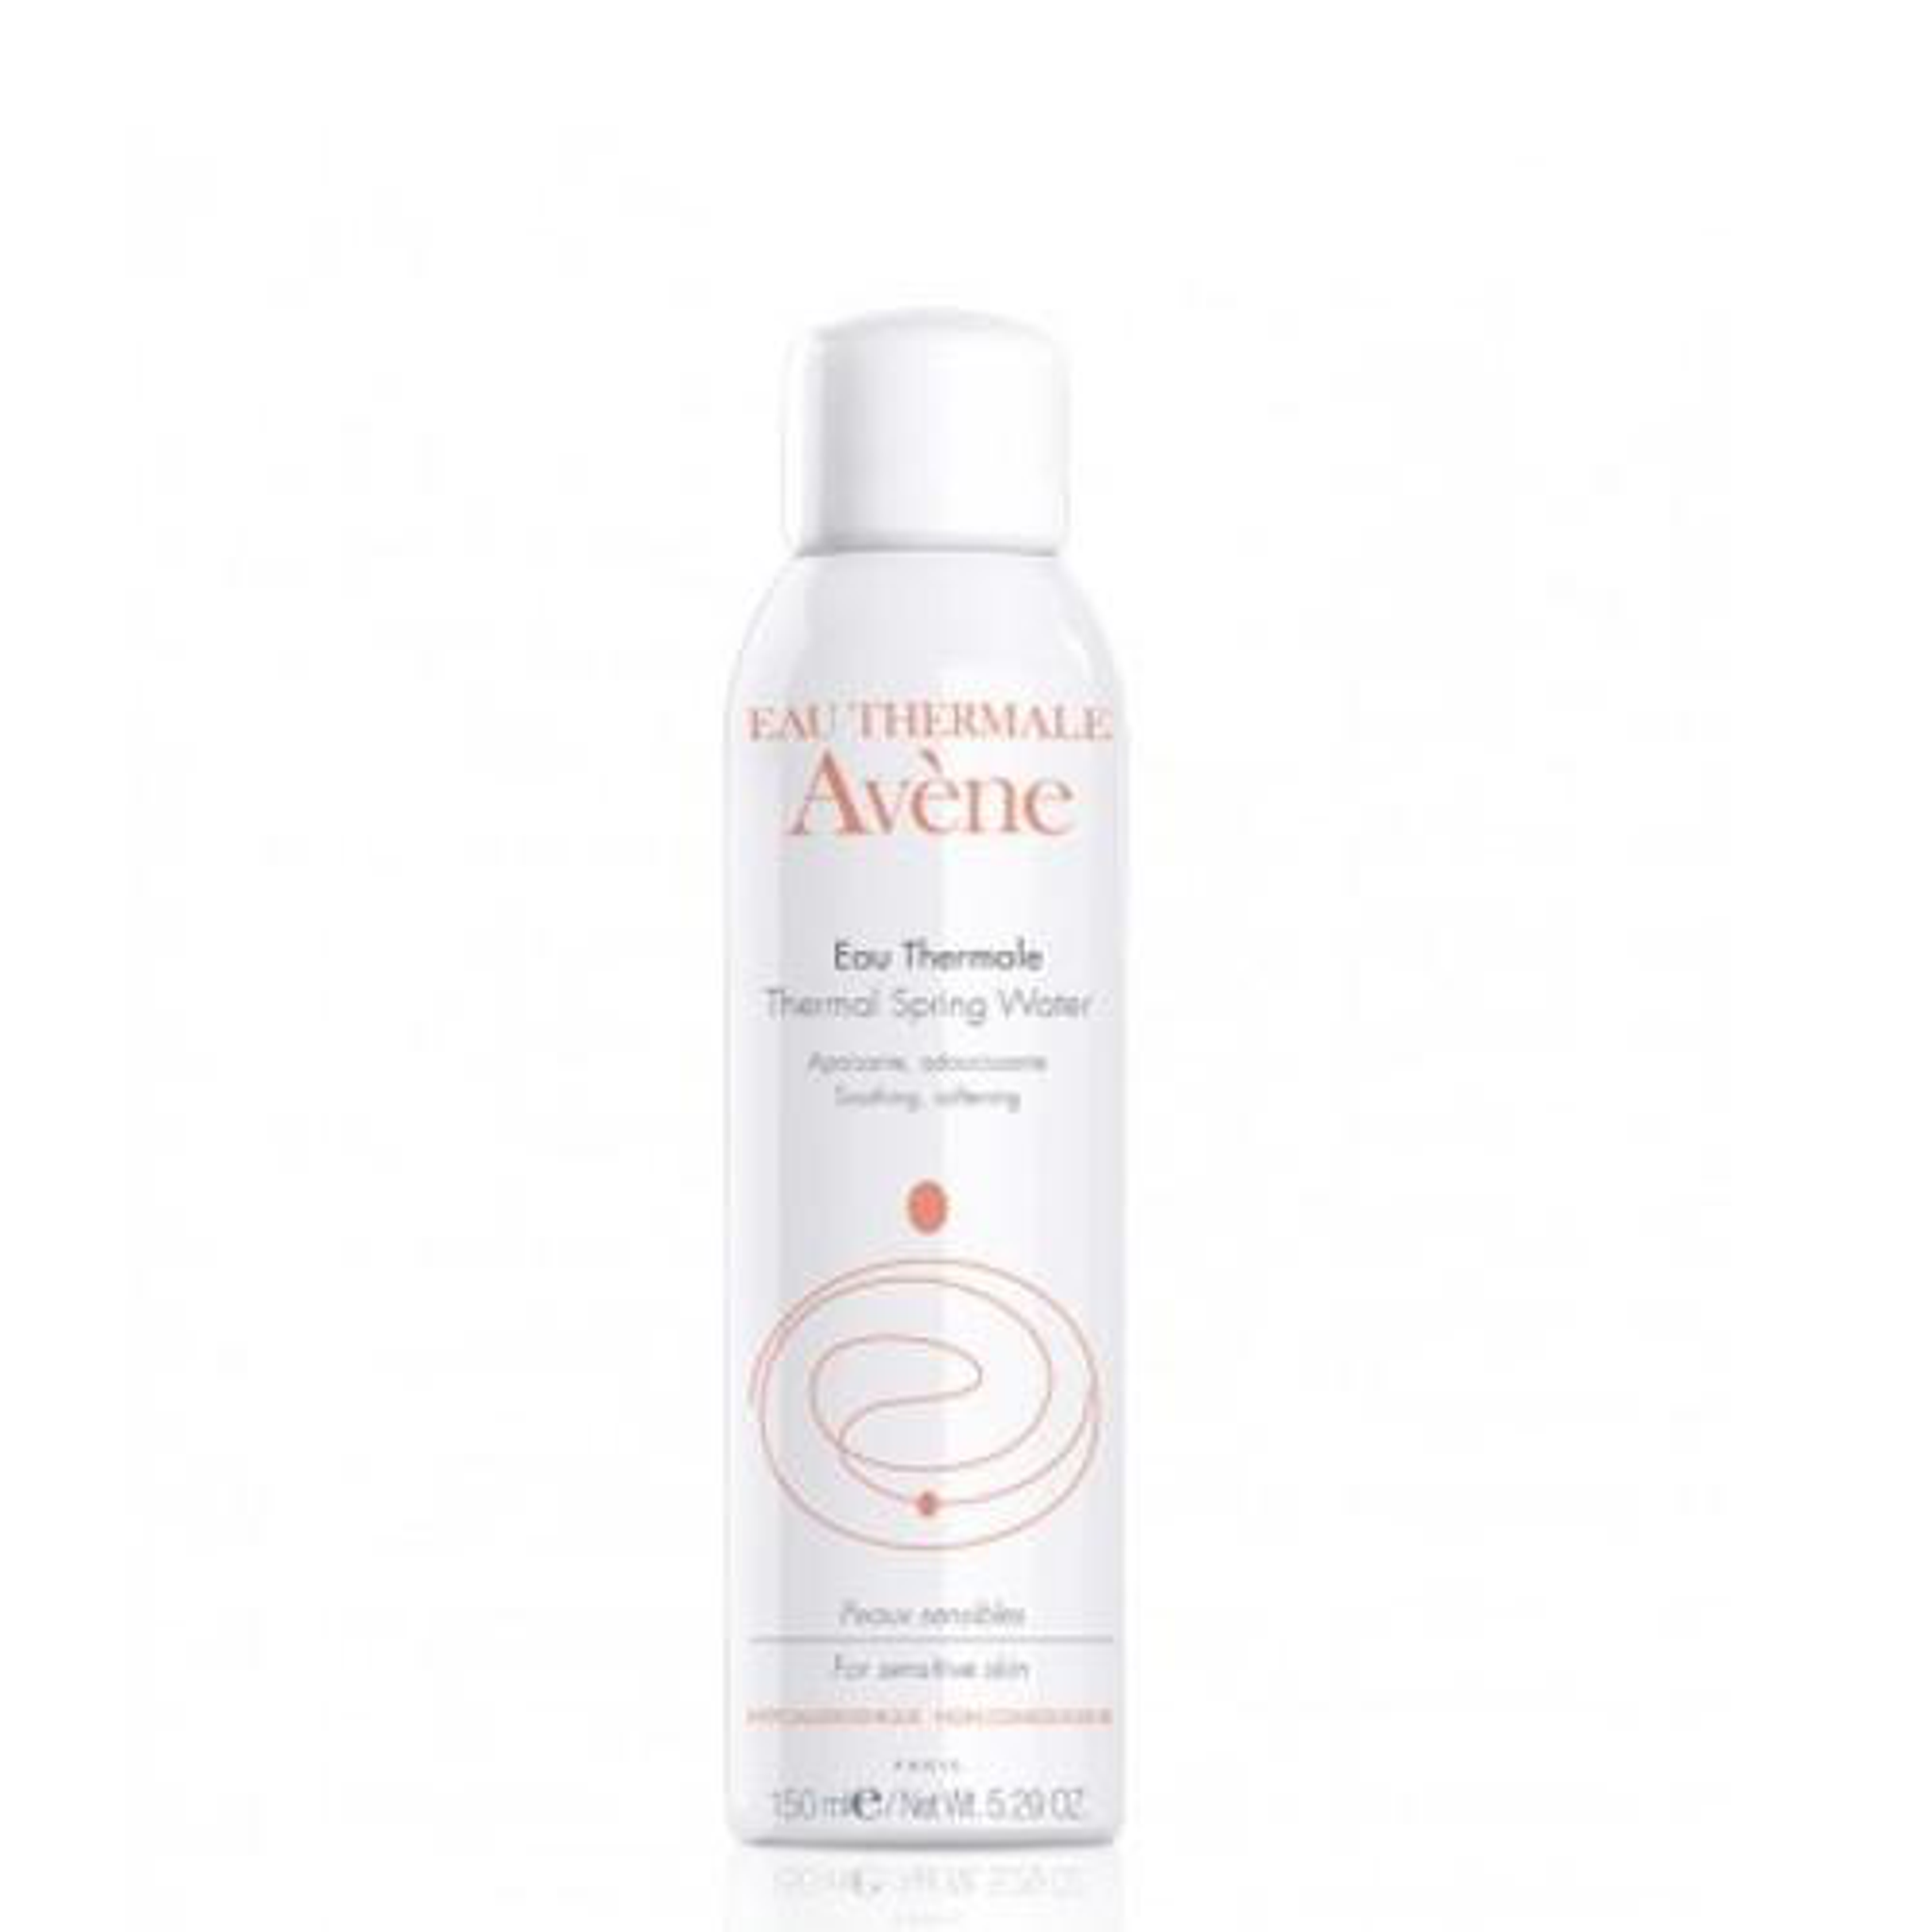 Avene Thermal Spring Water - Small